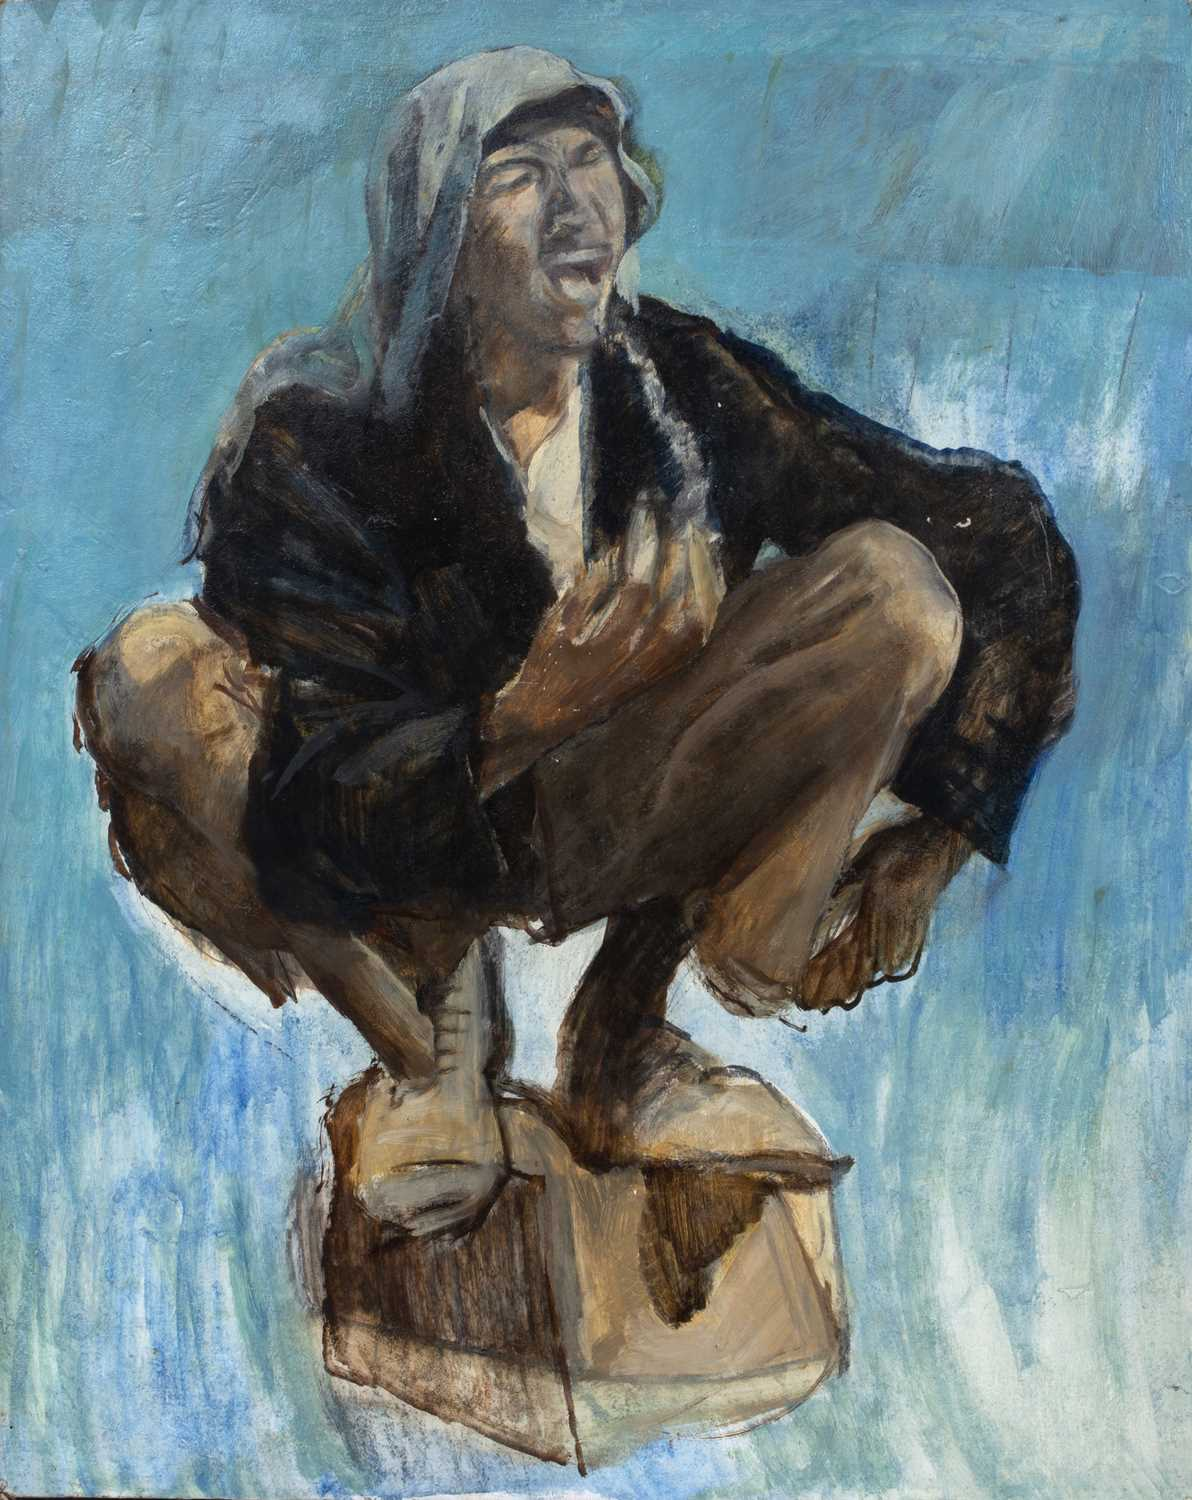 Bernard Kay (1927-2021) Crouching Figure oil on board 82 x 64cm; together with a Pop Art style oil